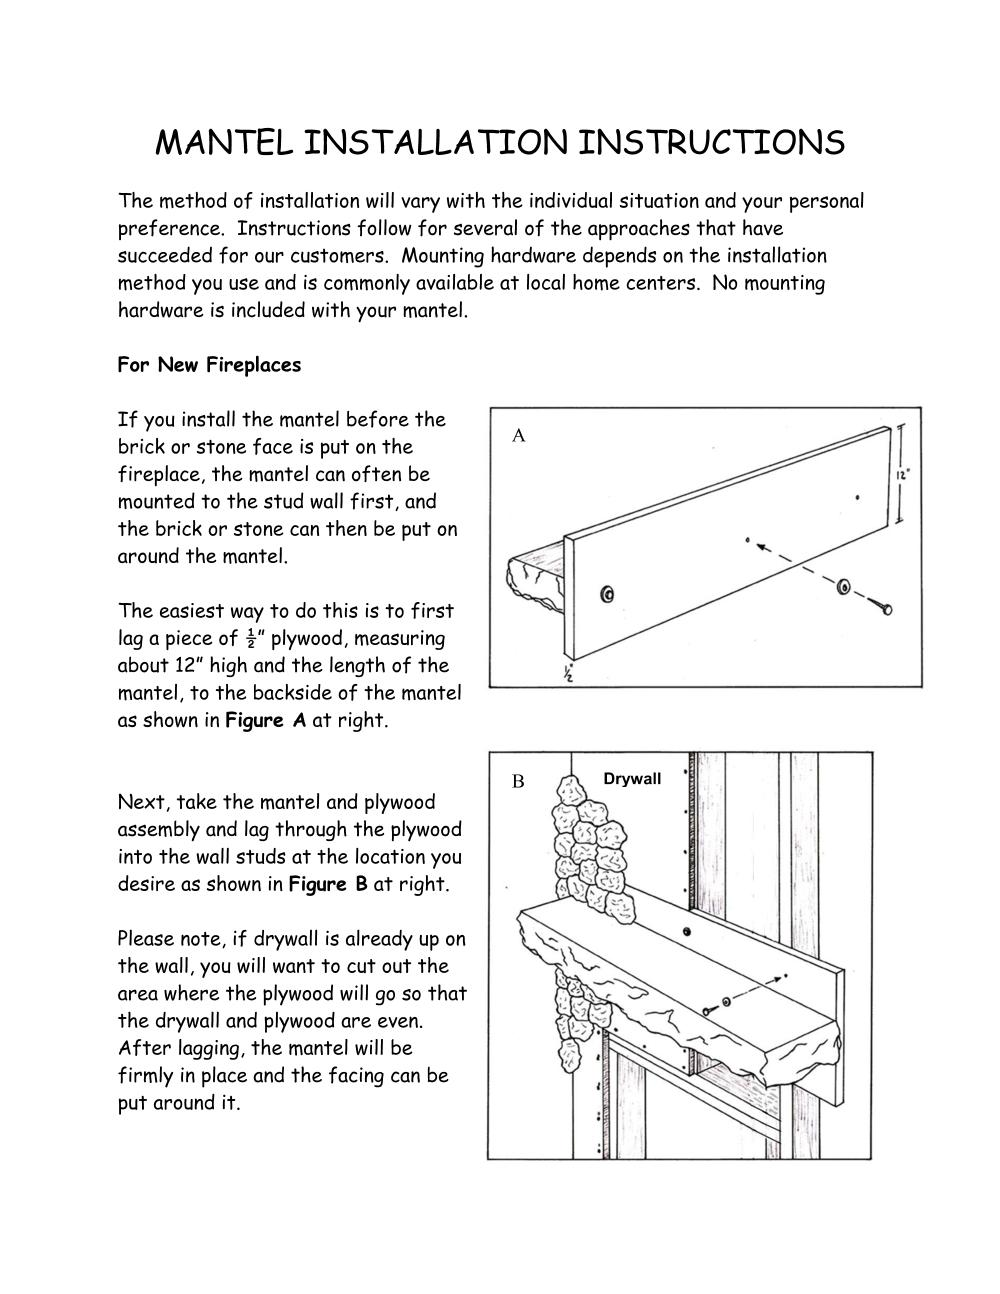 Page 1 of the log mantel installation instructions